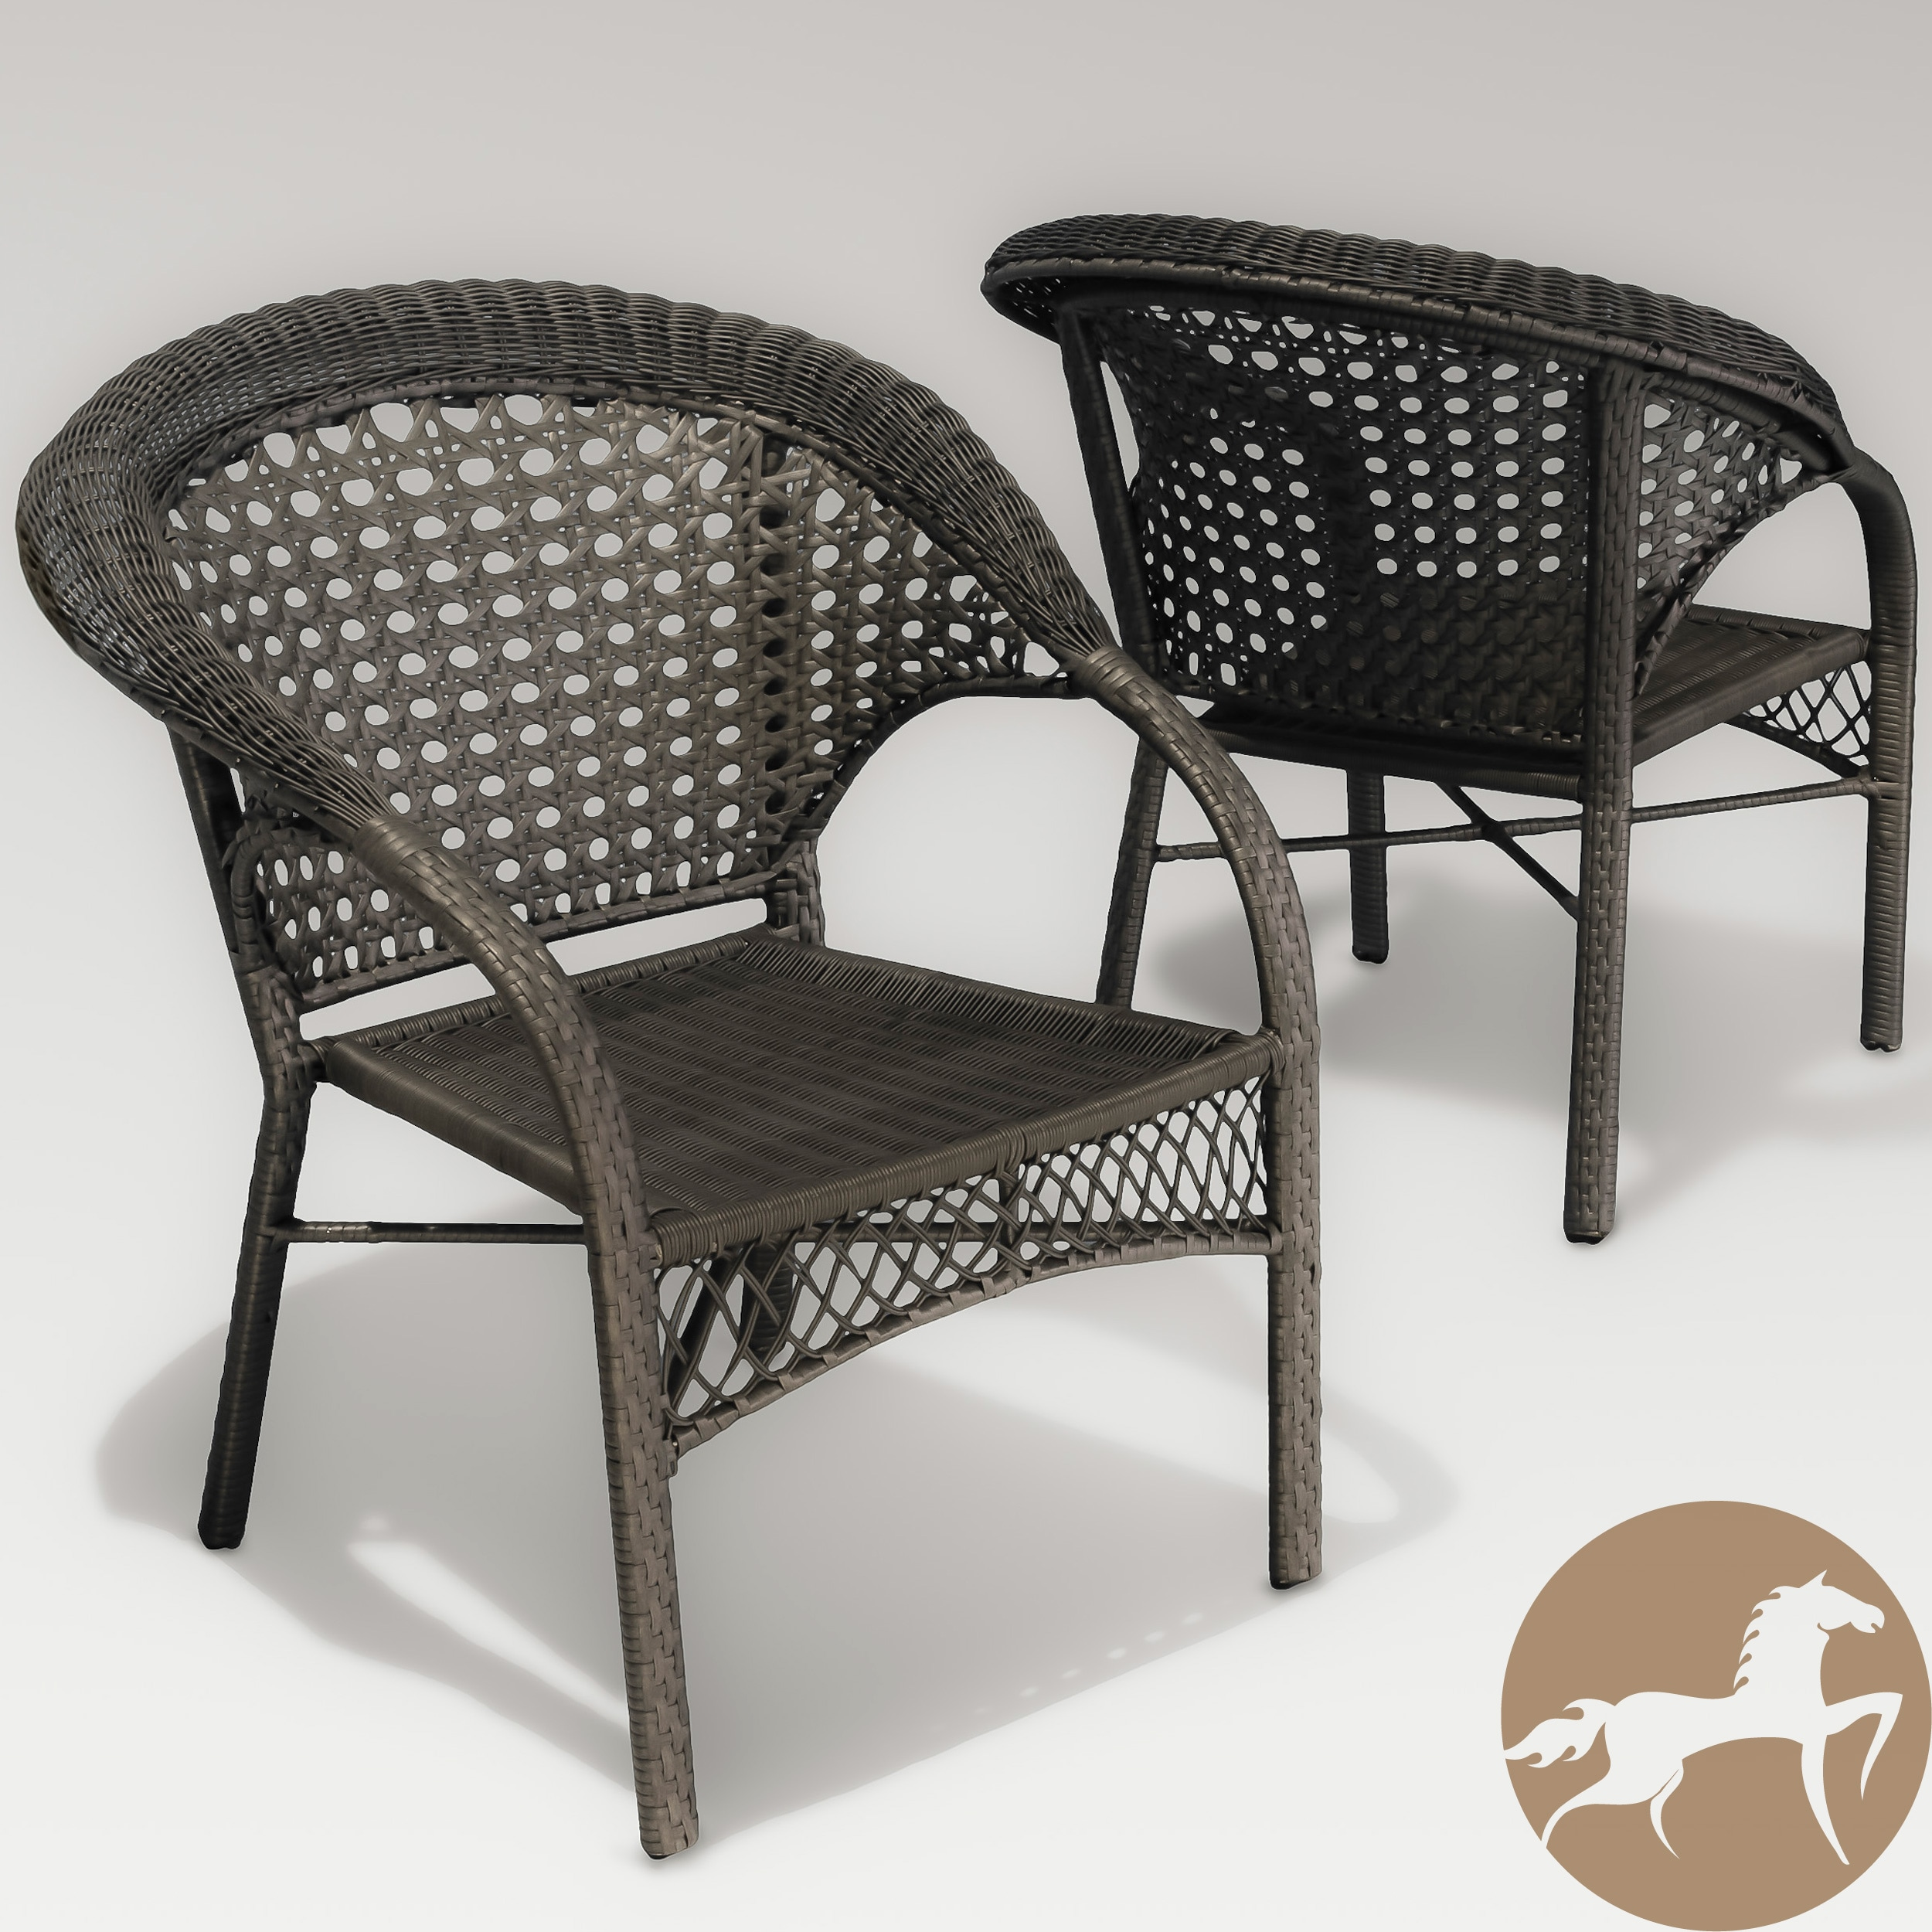 Furniture For Sale Adfind Org